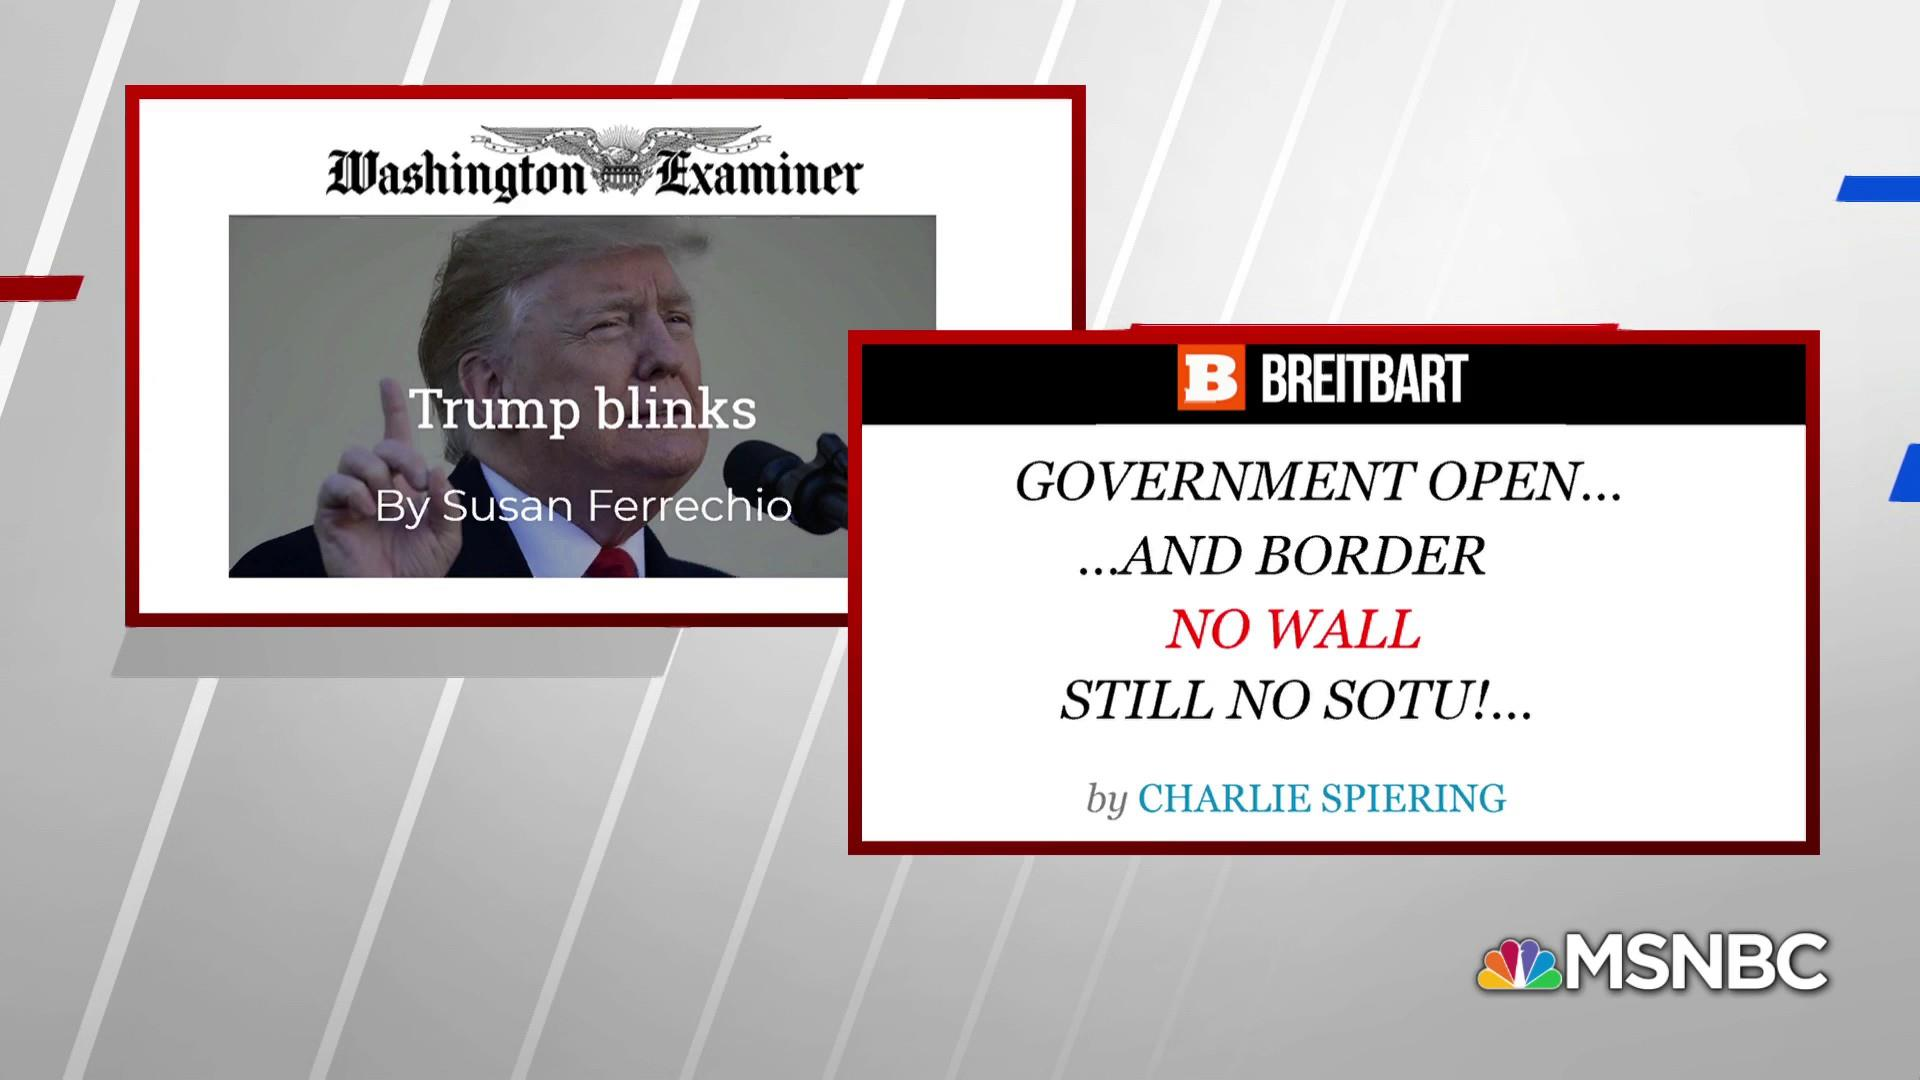 Right wing lashes out at Trump after caving on shutdown